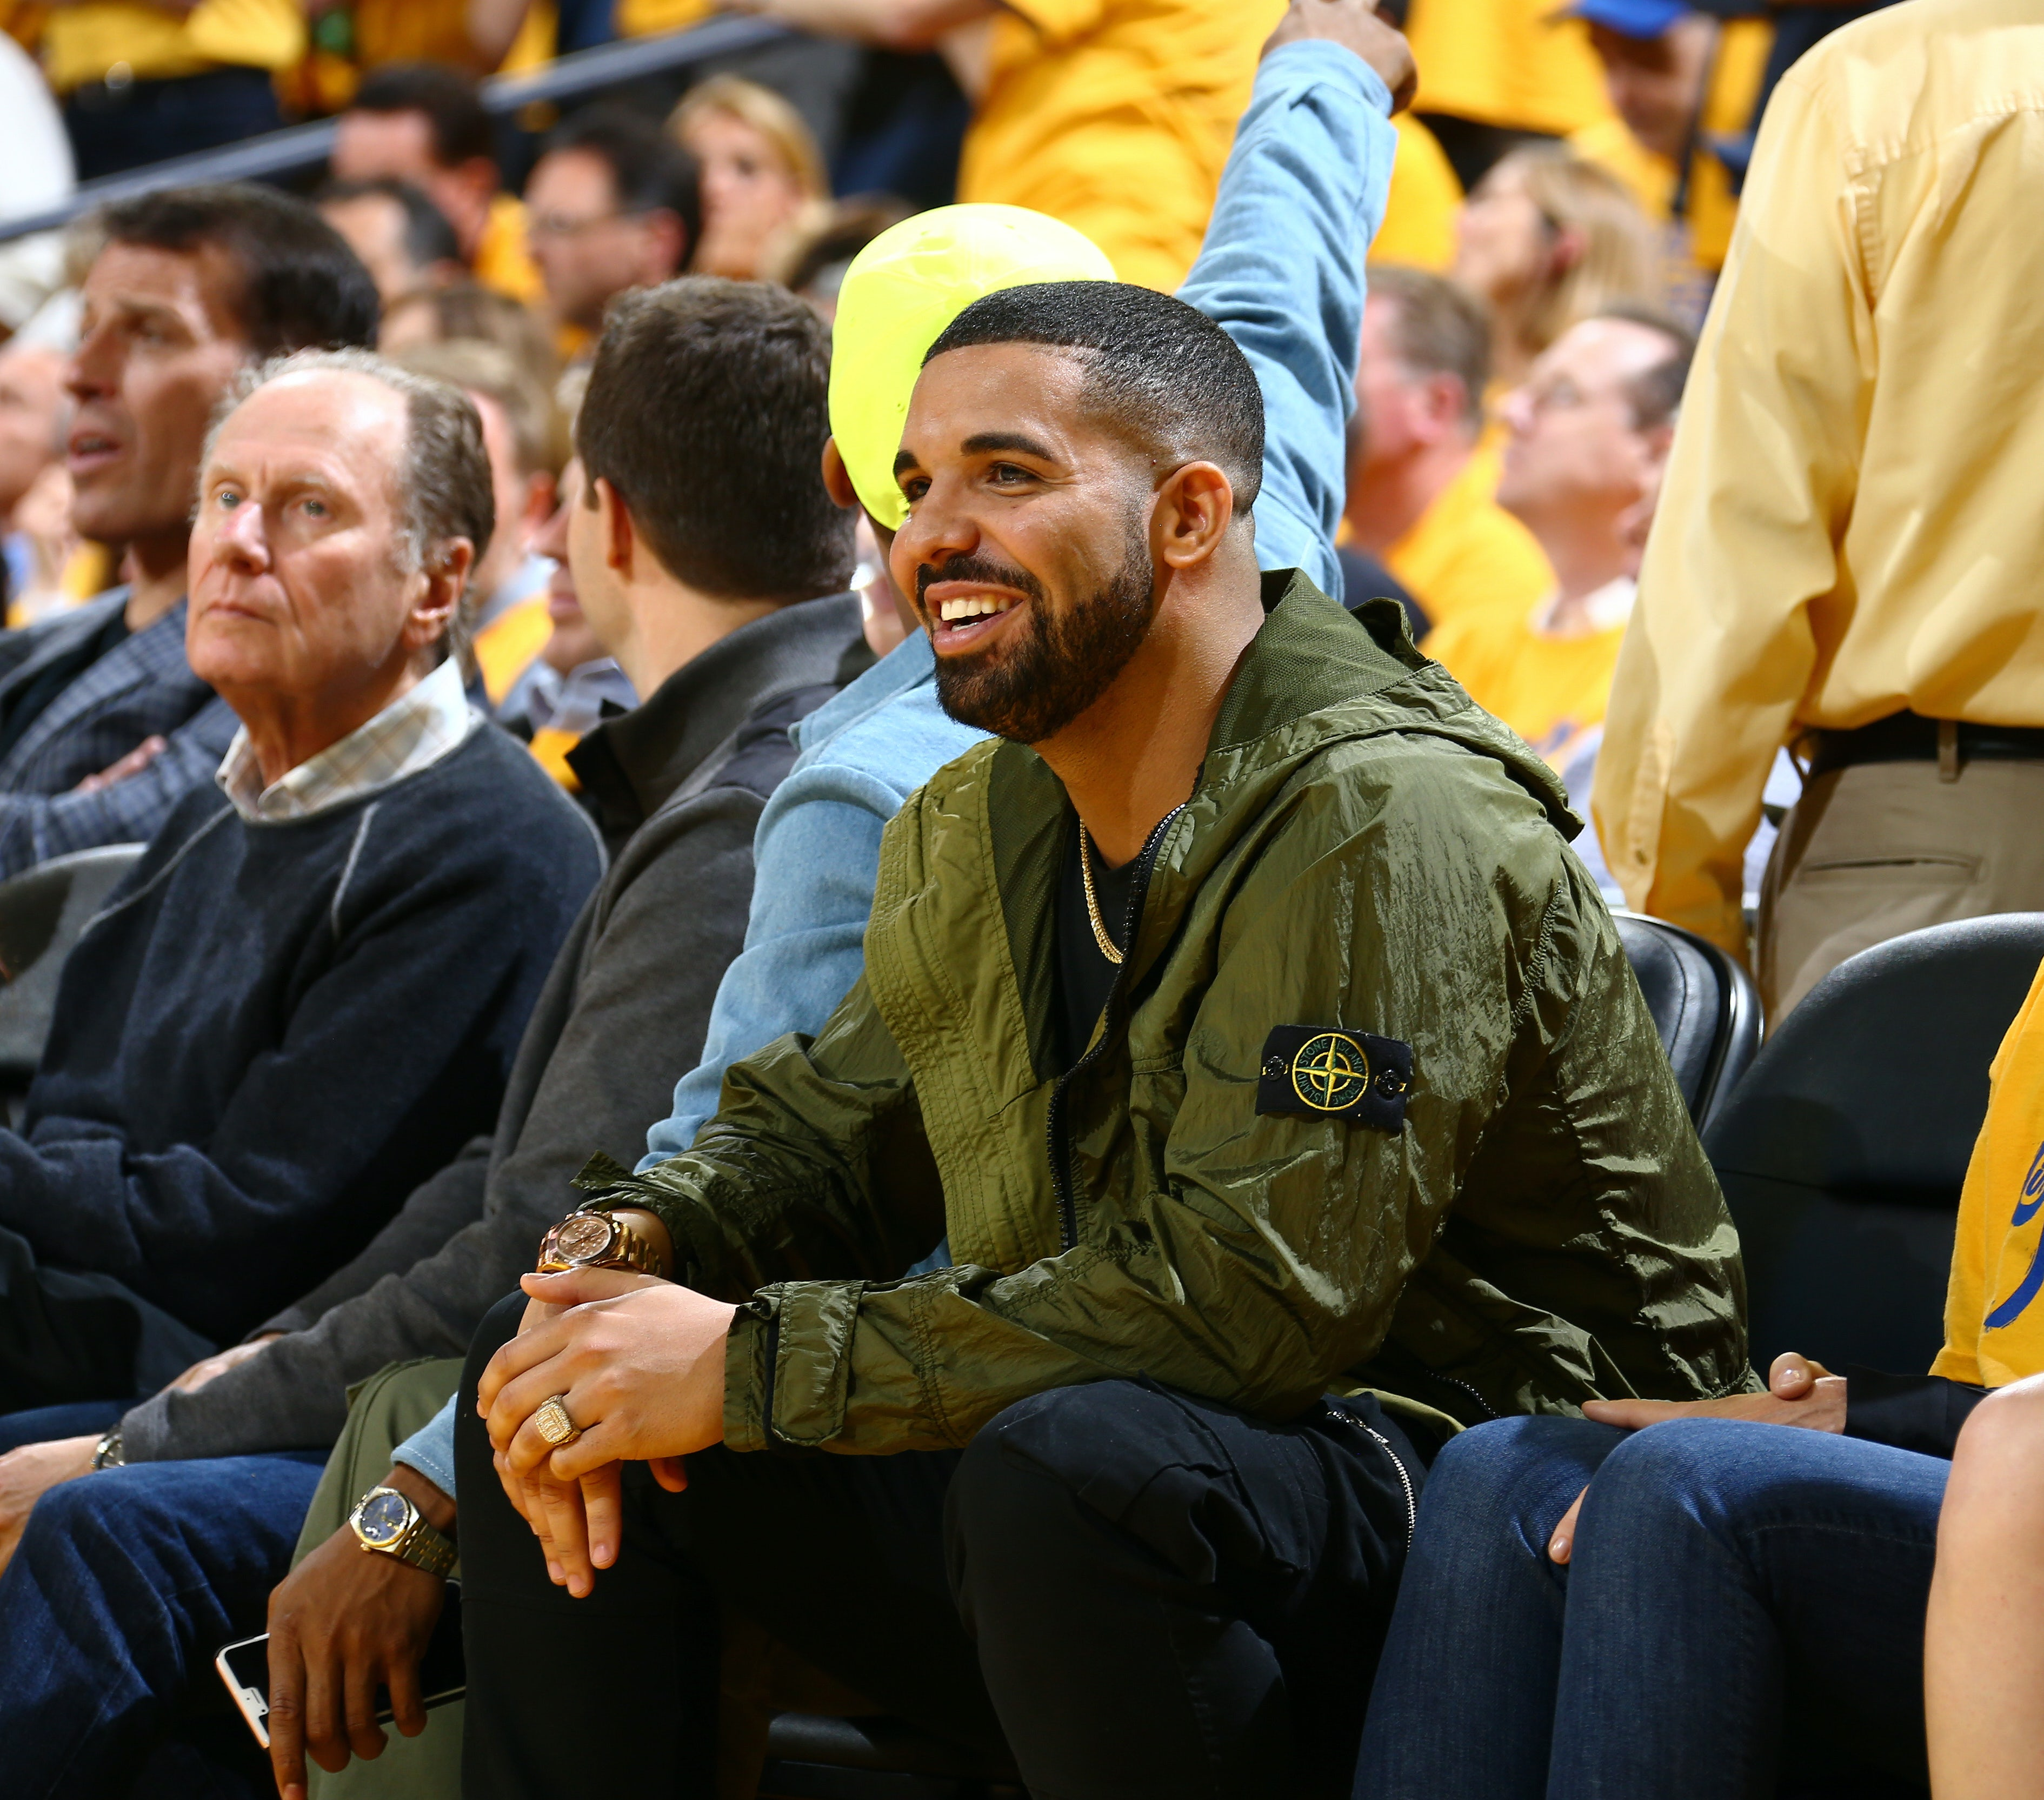 Canadian rapper Drake, one of Stone Island and Moncler's most prominent clients, attends the 2016 NBA finals wearing Stone Island. Getty Images.